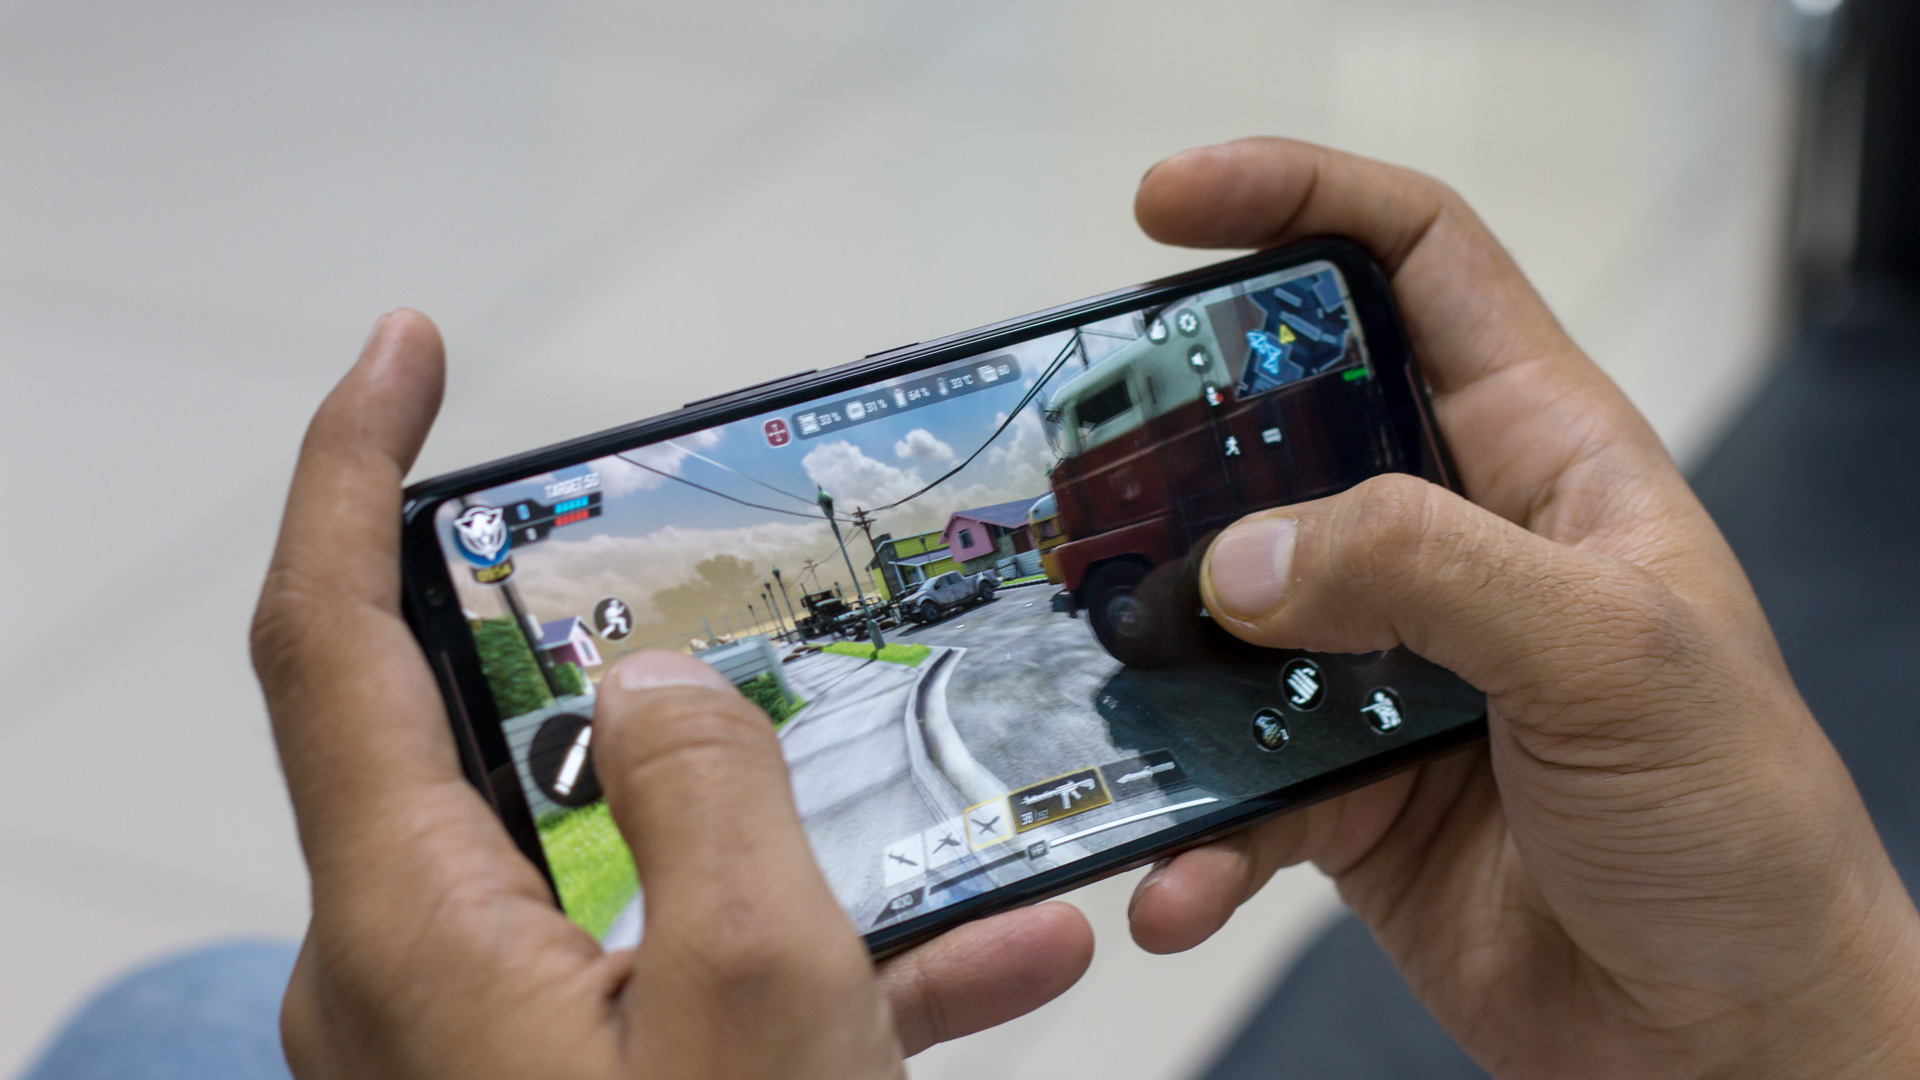 List Of 120fps Android Games For Phones With High Refresh Rate Screens Smartprix Bytes